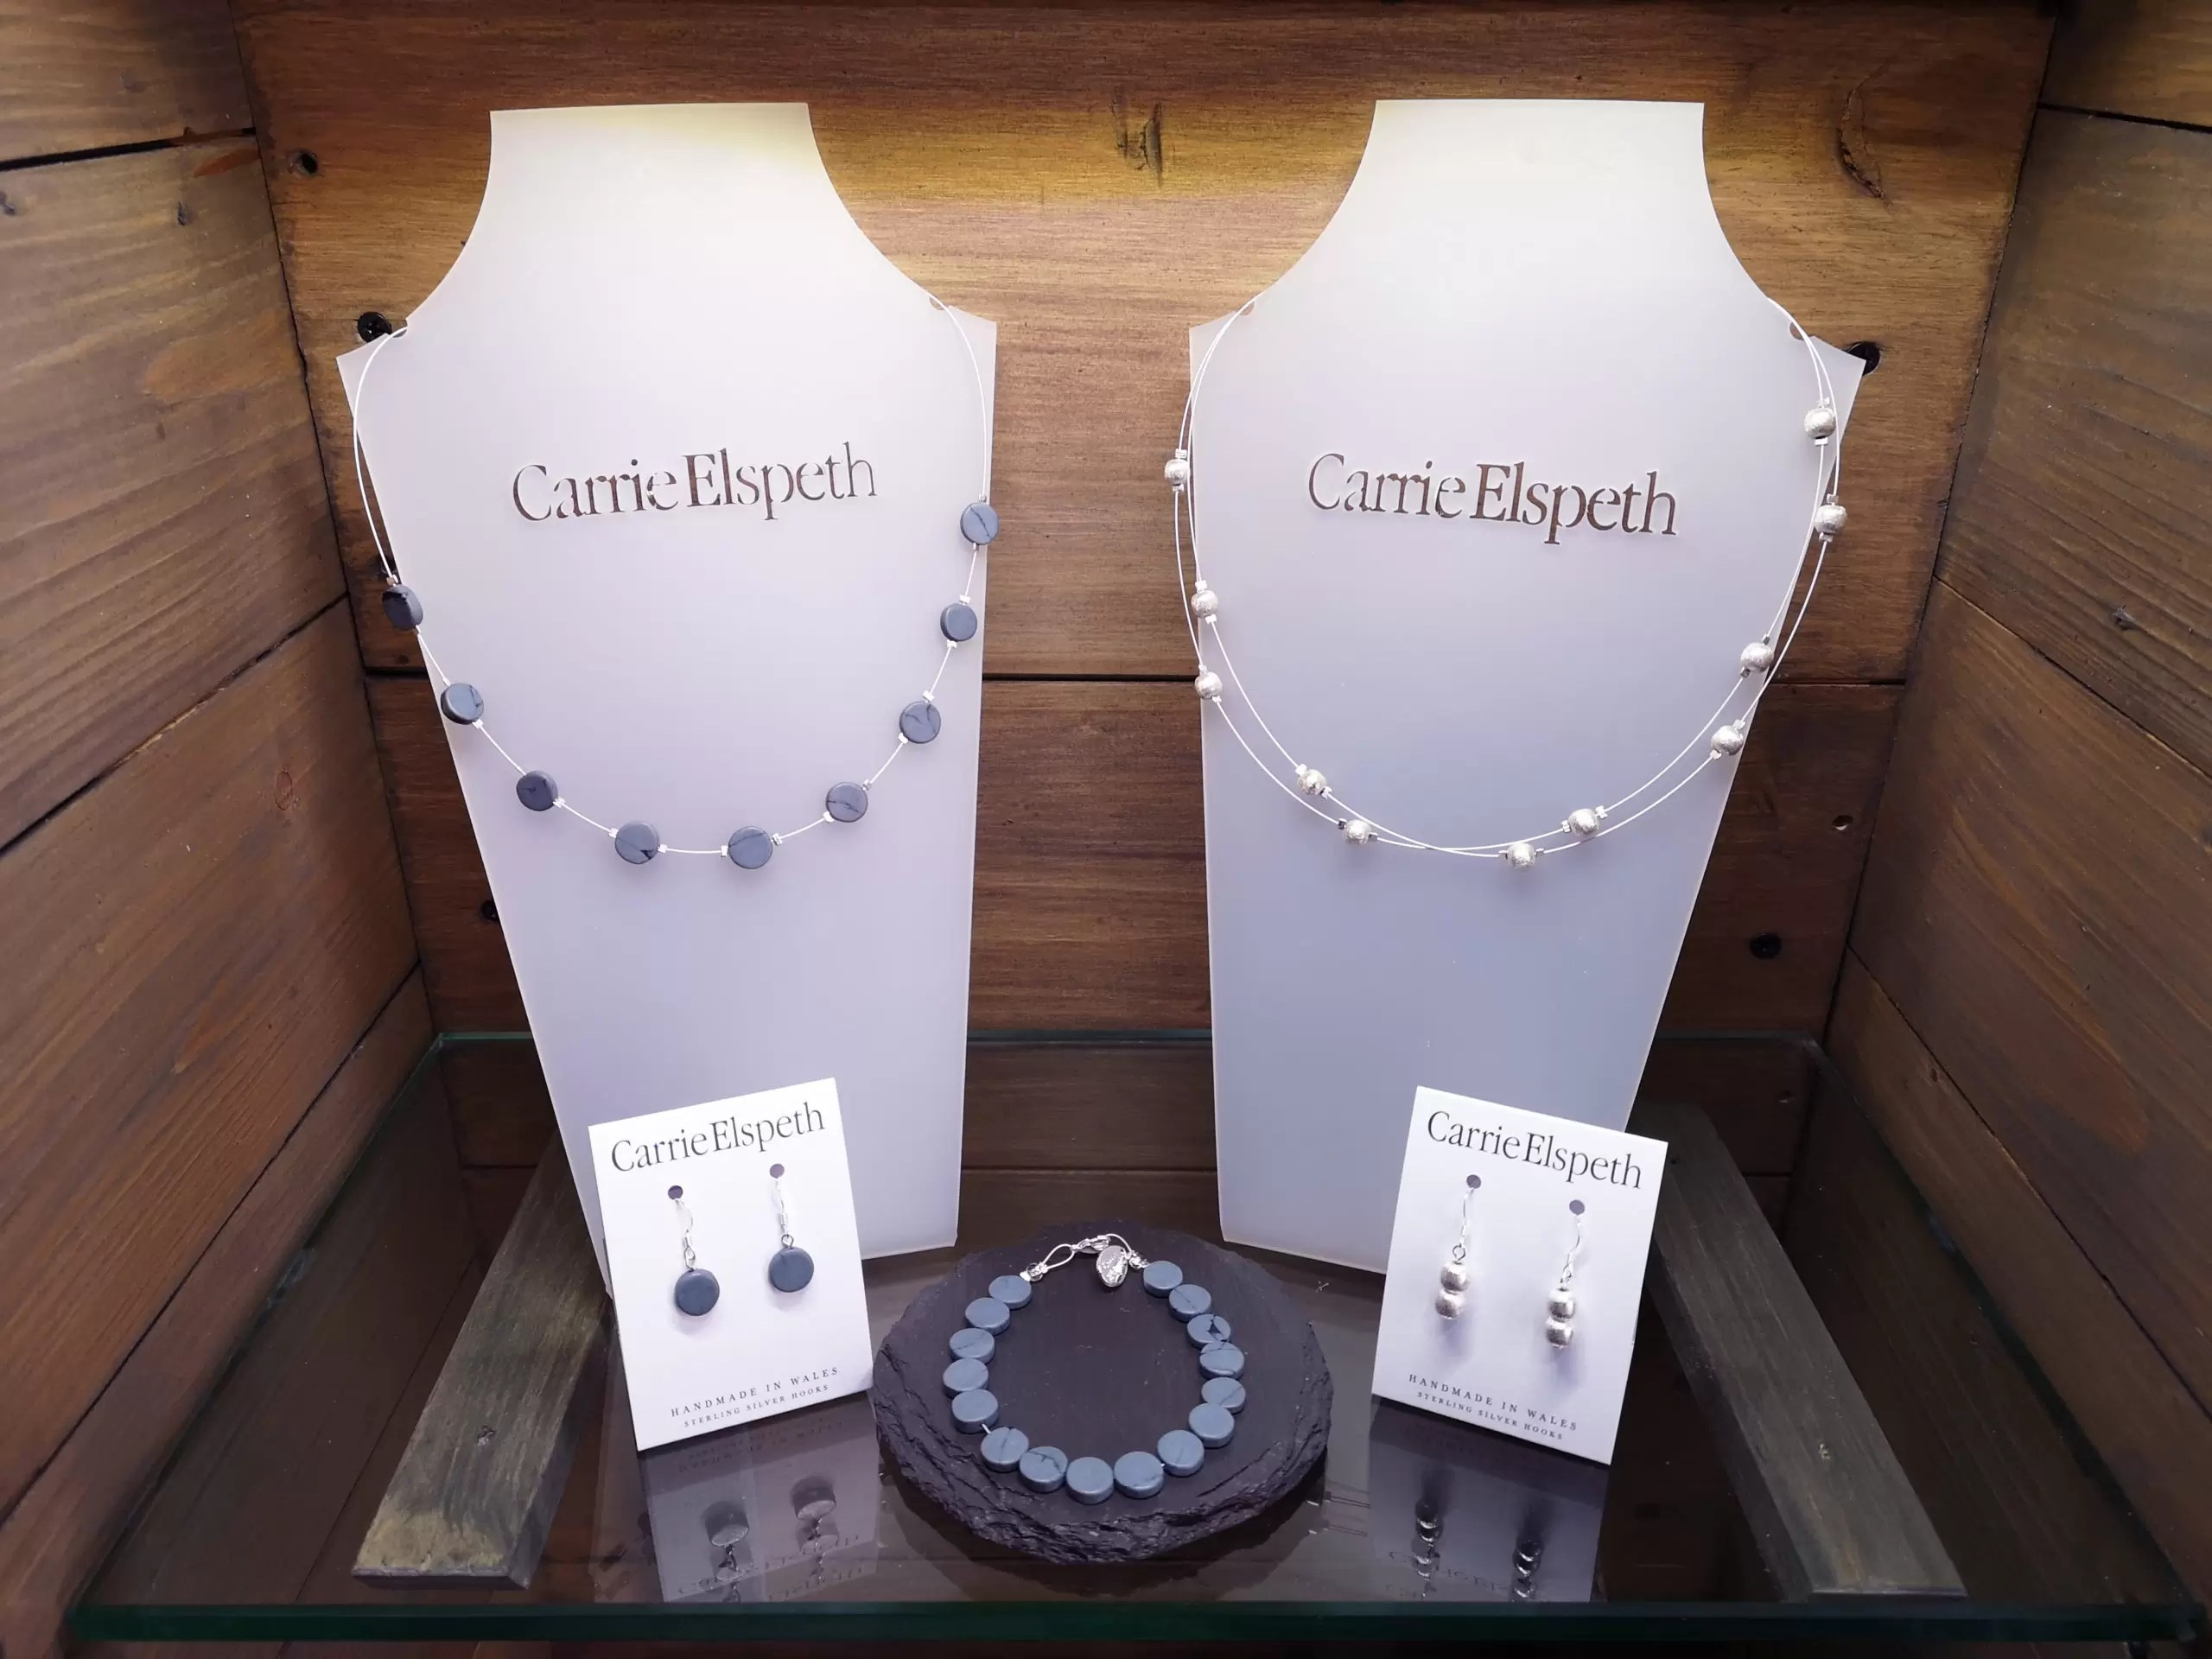 Carrie Elspeth Jewellery Gift Ideas